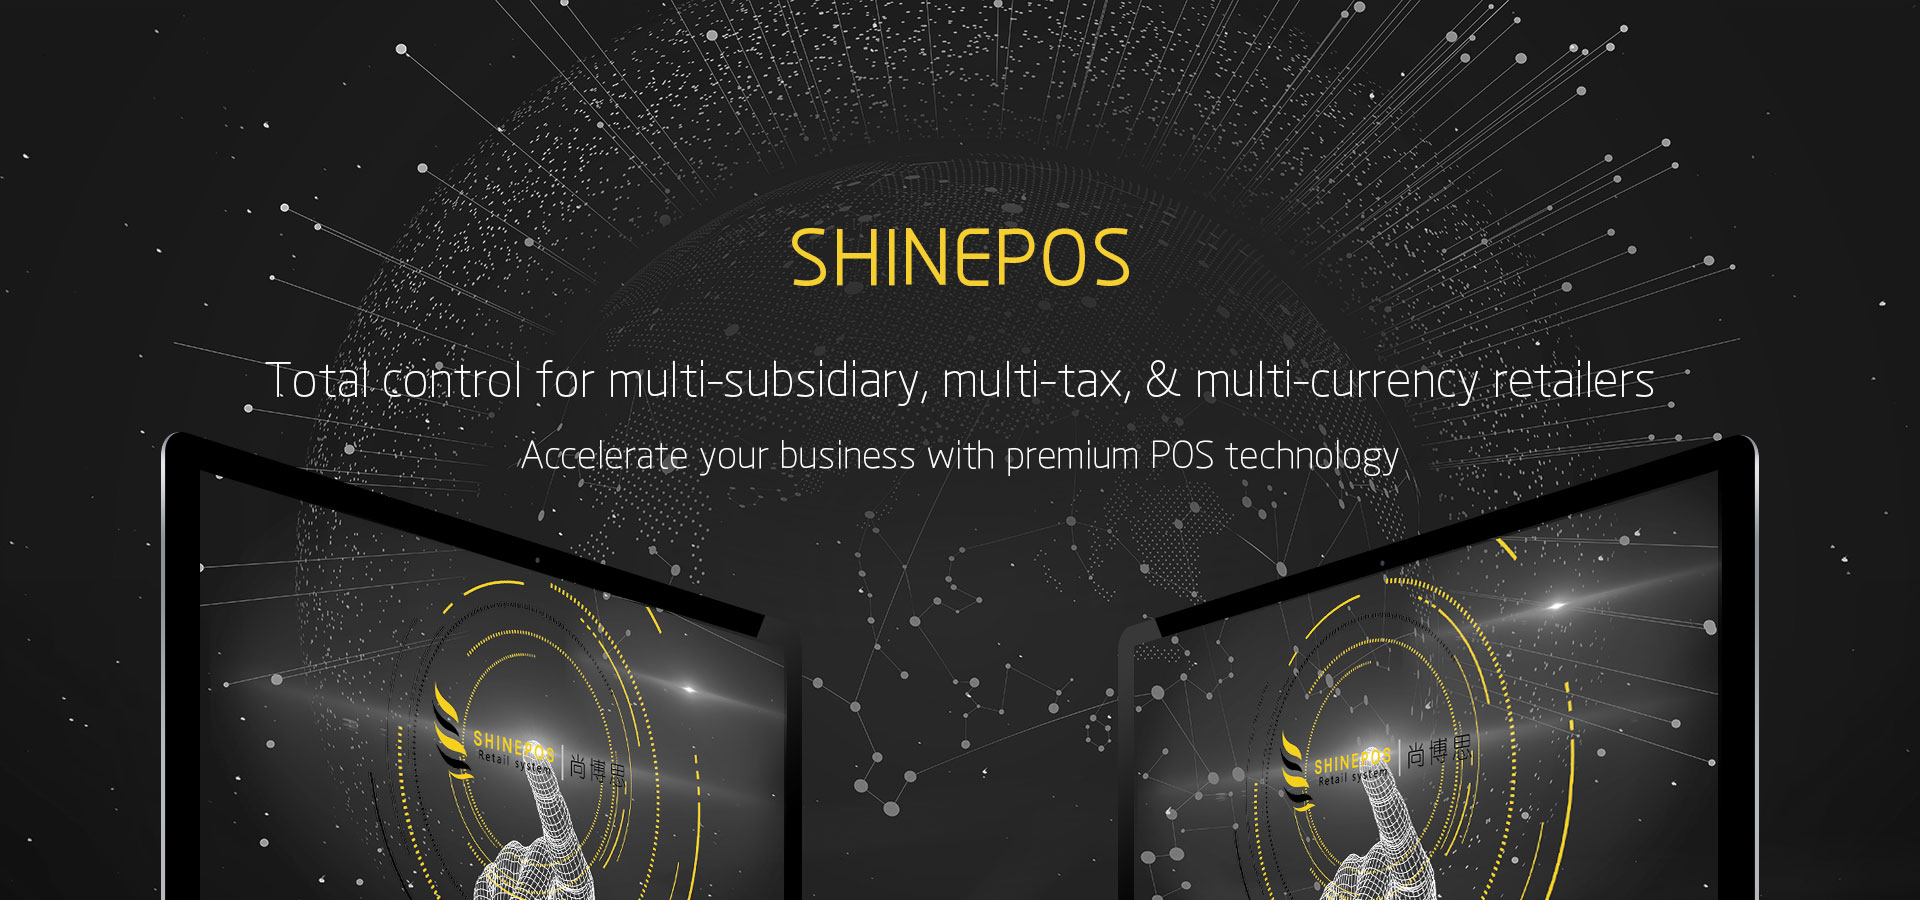 Shinepos Retail System,retail management system,multi-store management,